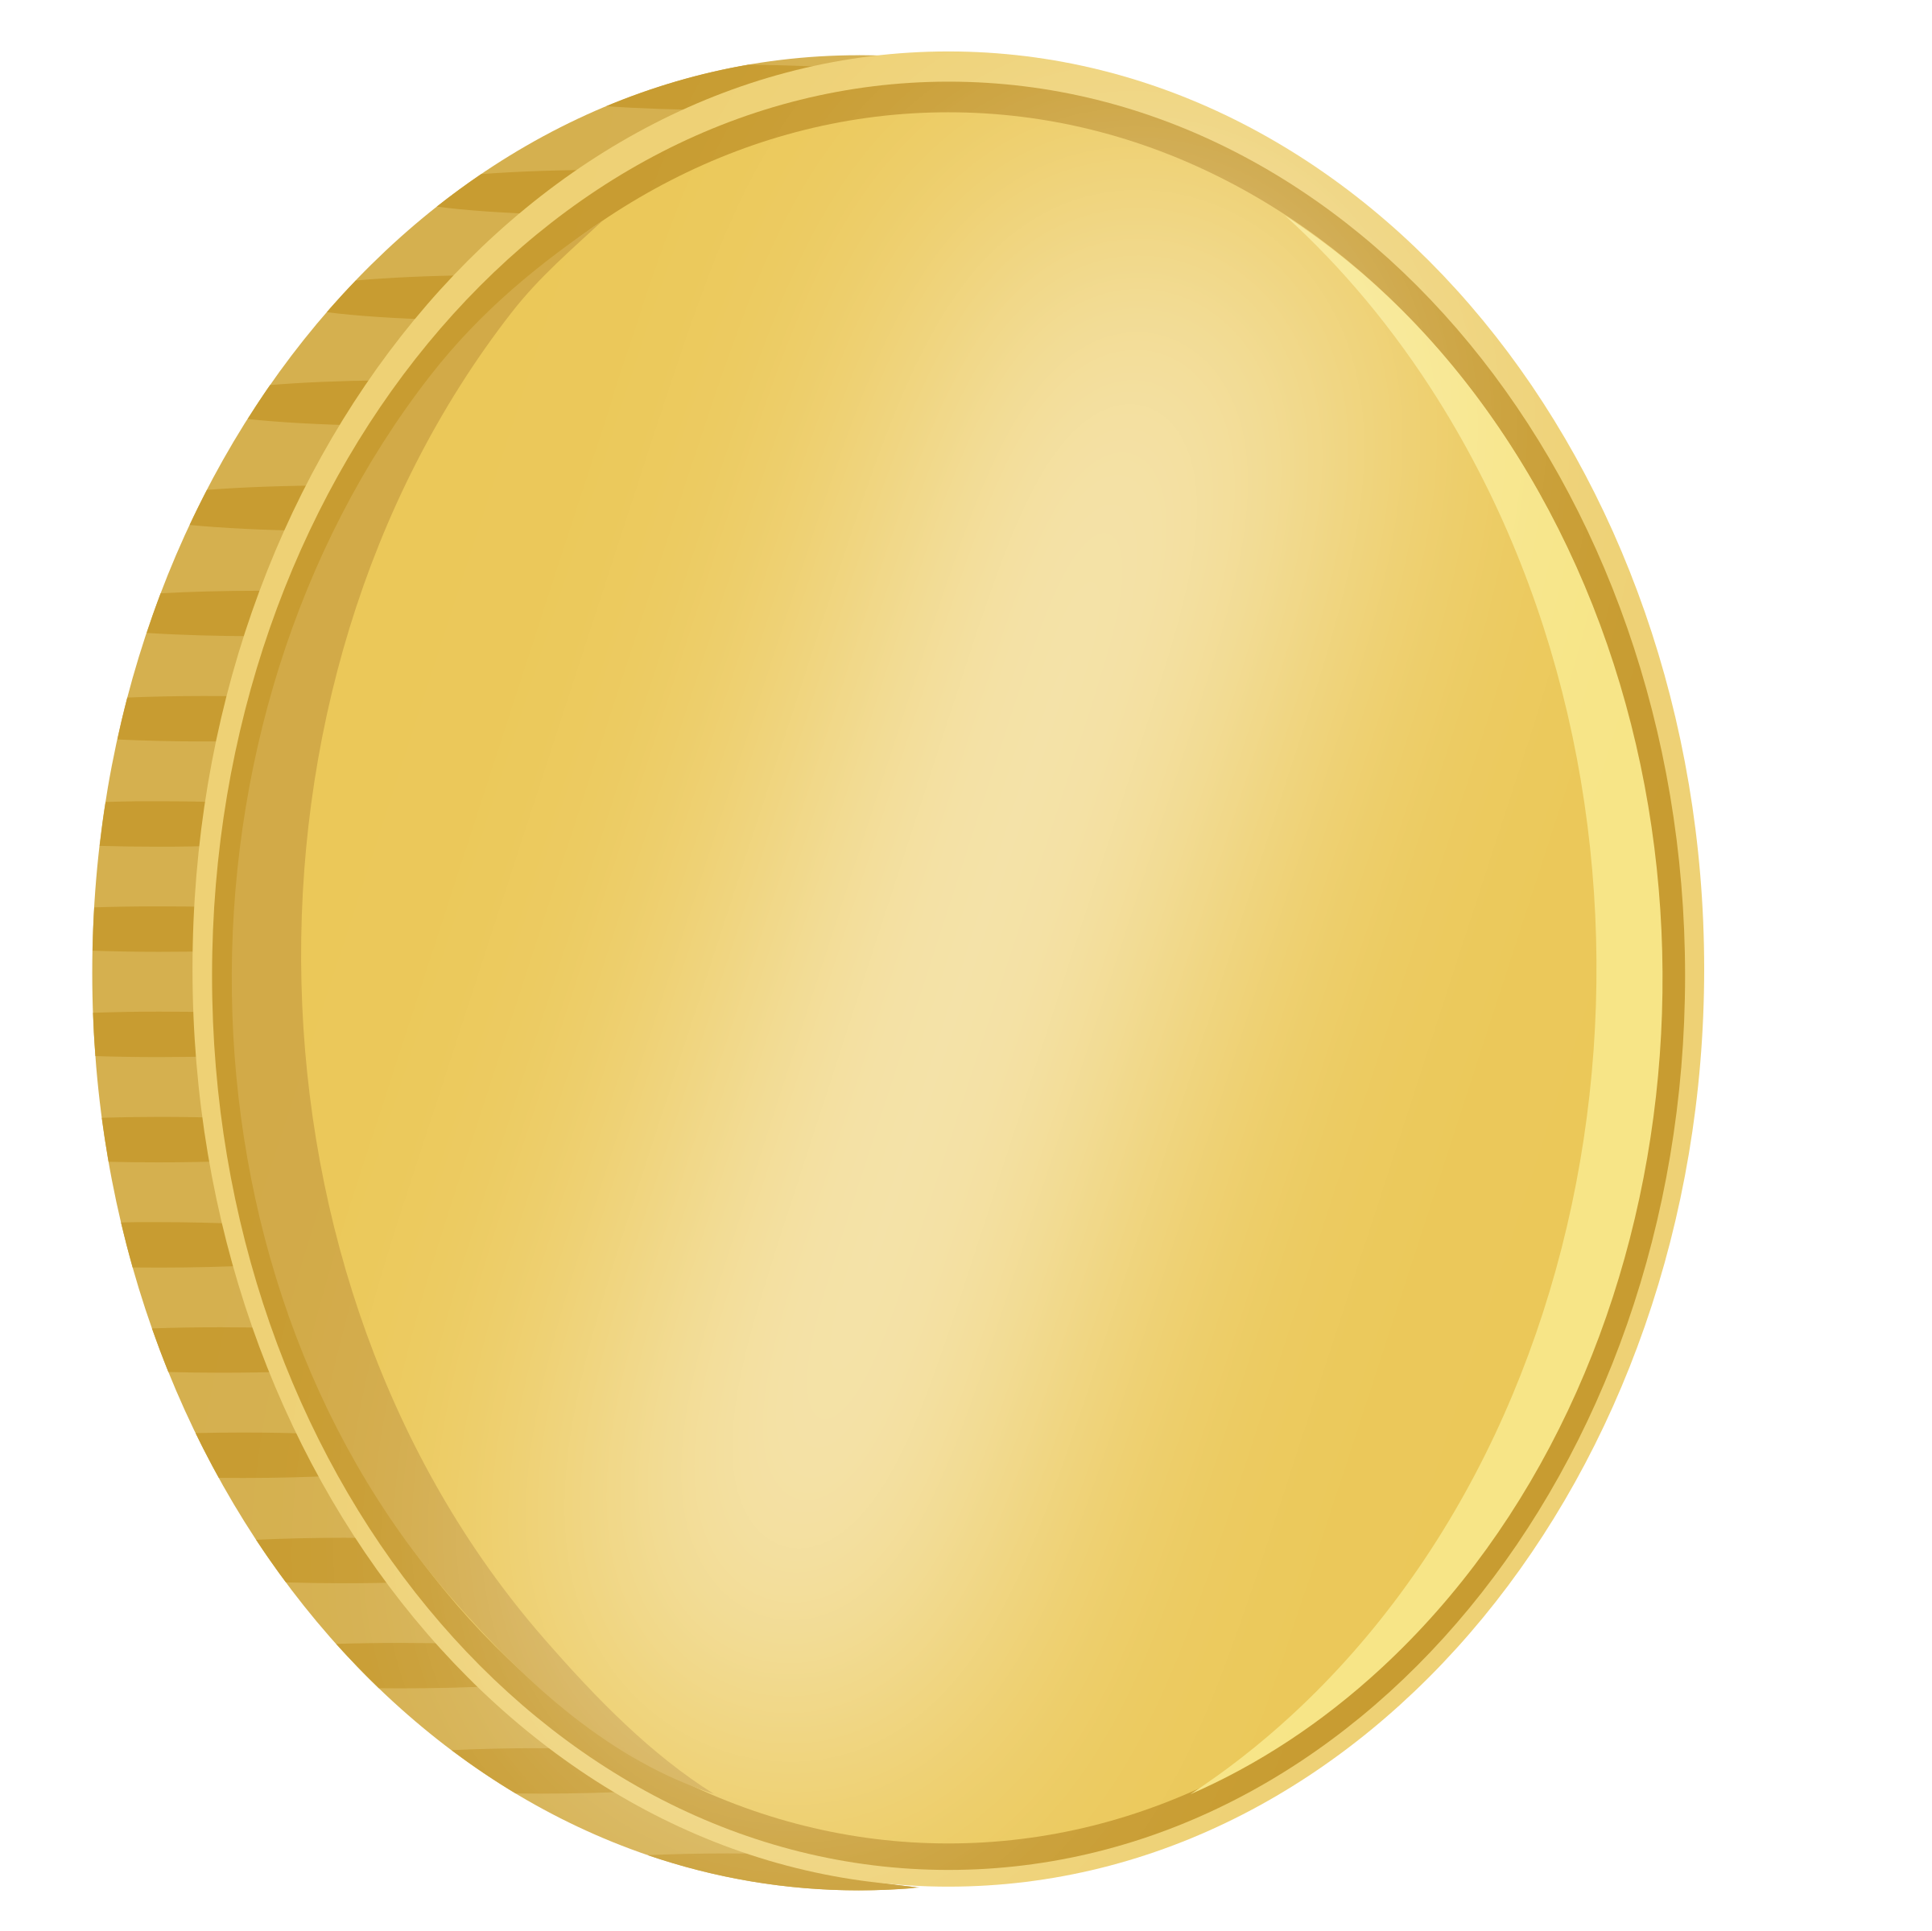 Coins money png image. Treasure clipart bag gold coin